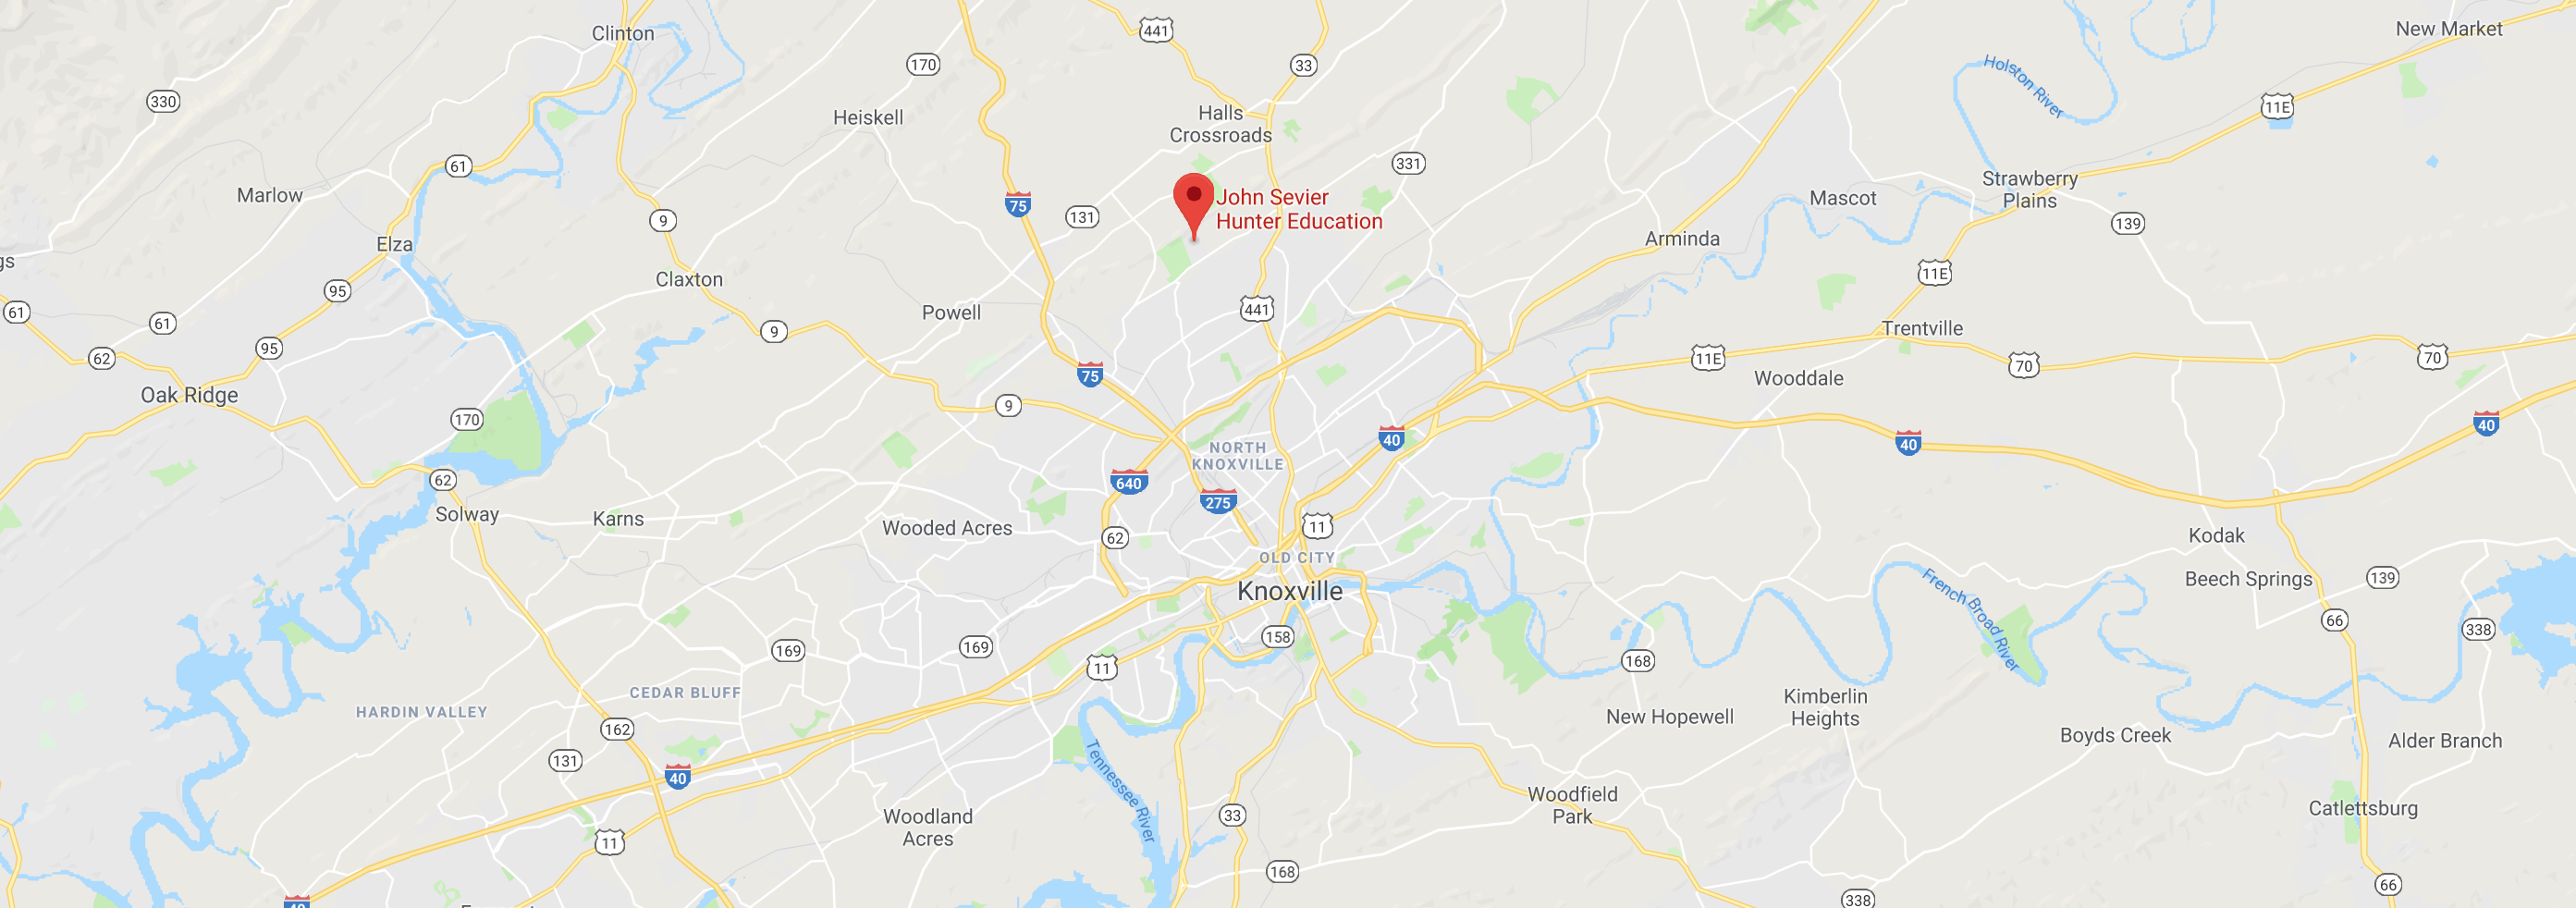 tn drivers license locations knoxville